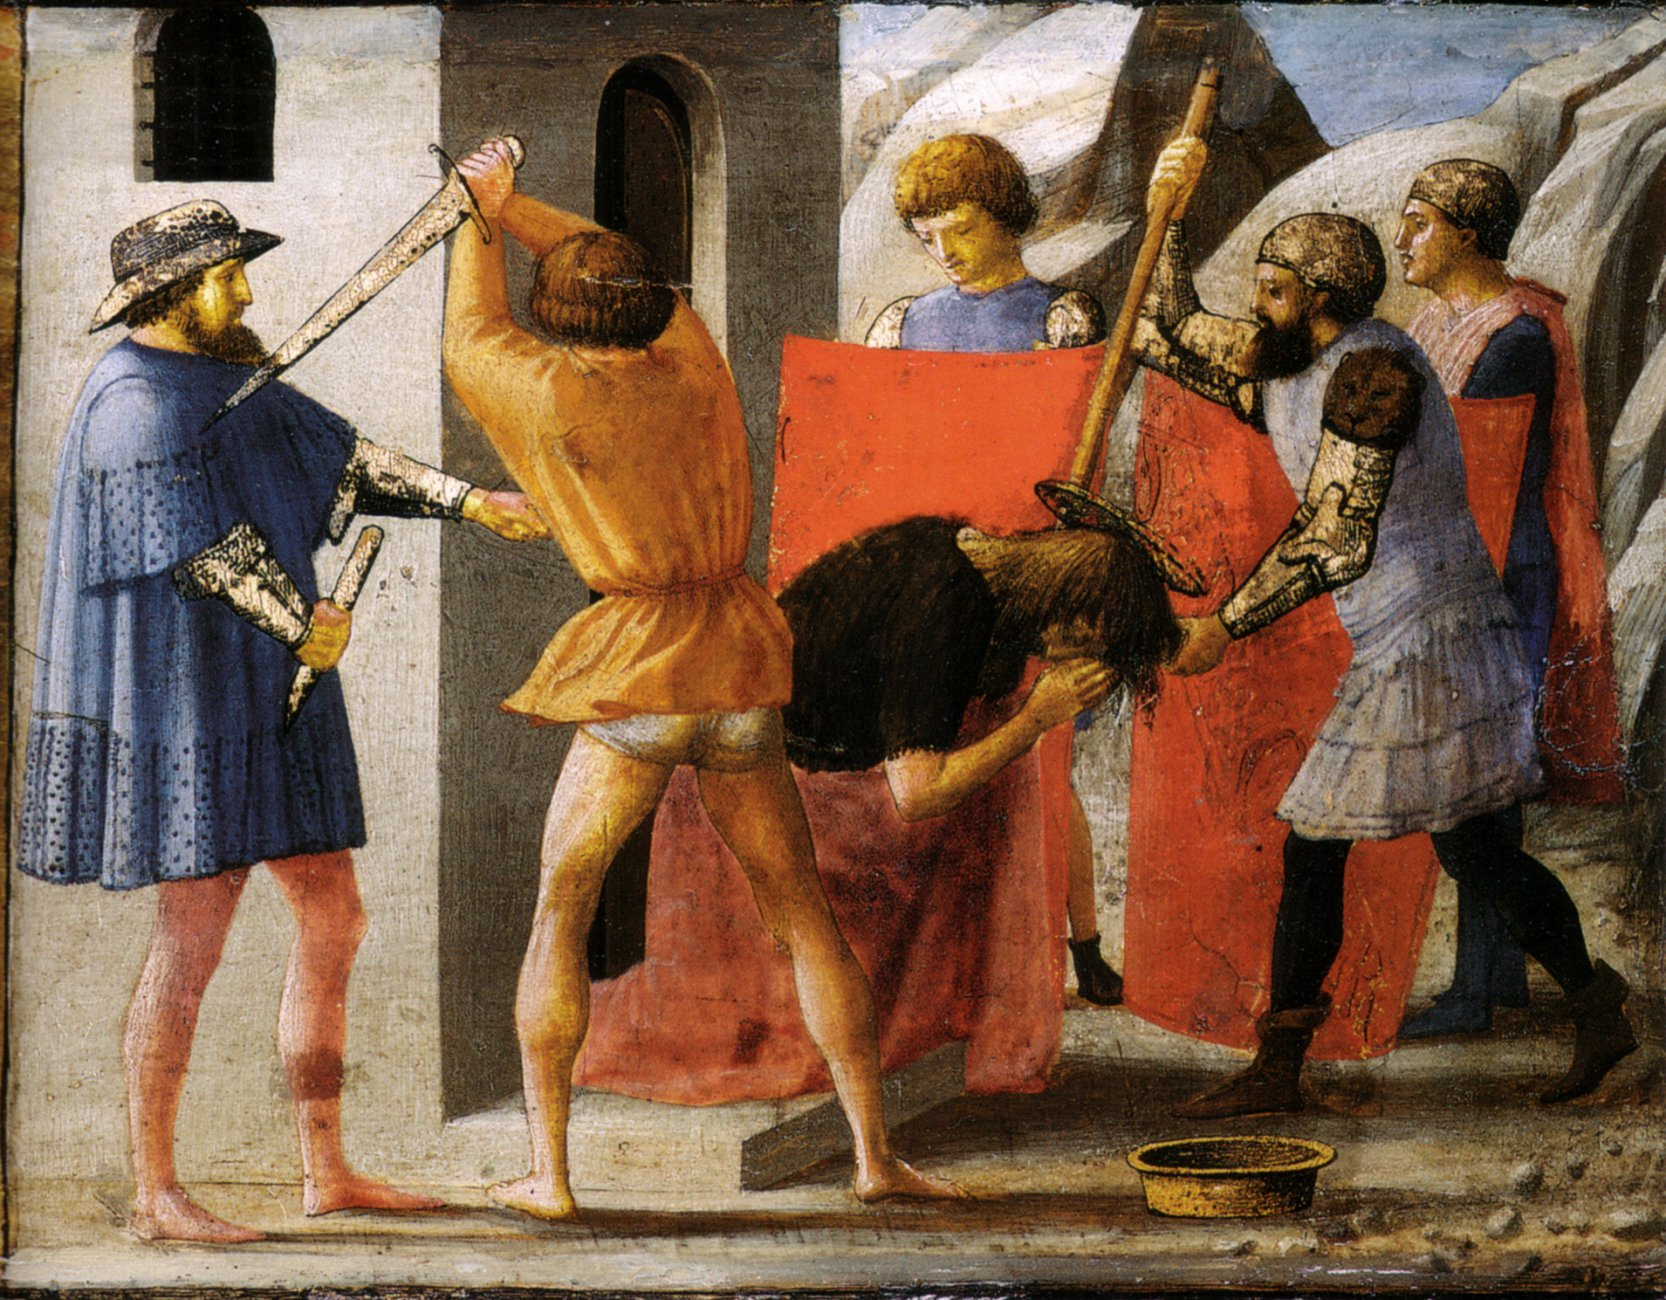 martyrdom-of-san-giovanni-battista-1426.jpg